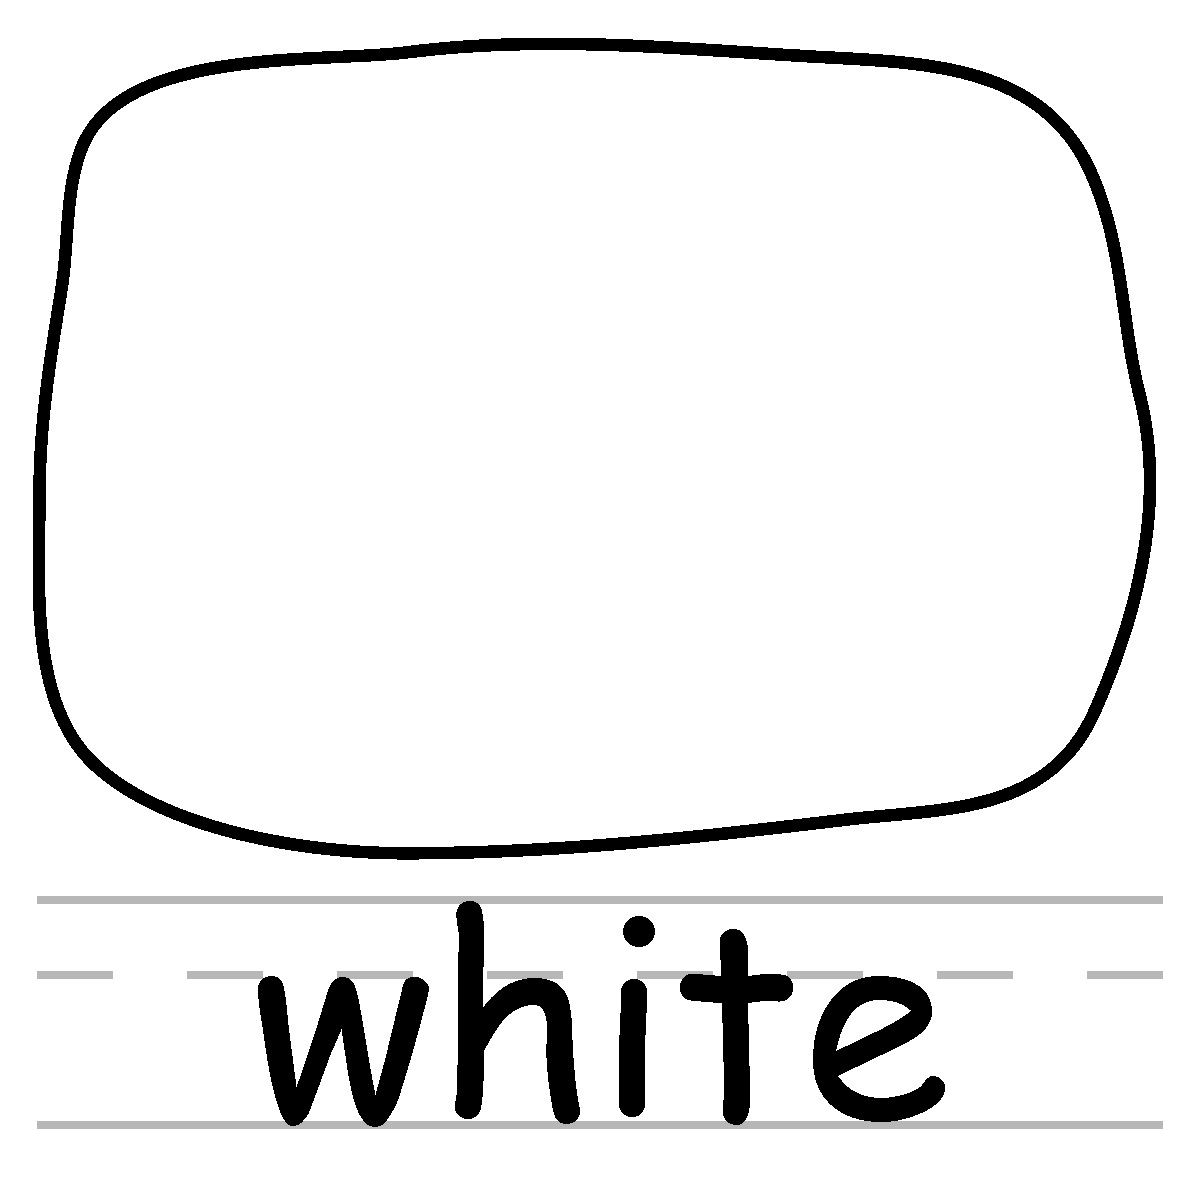 White clipart #14, Download drawings